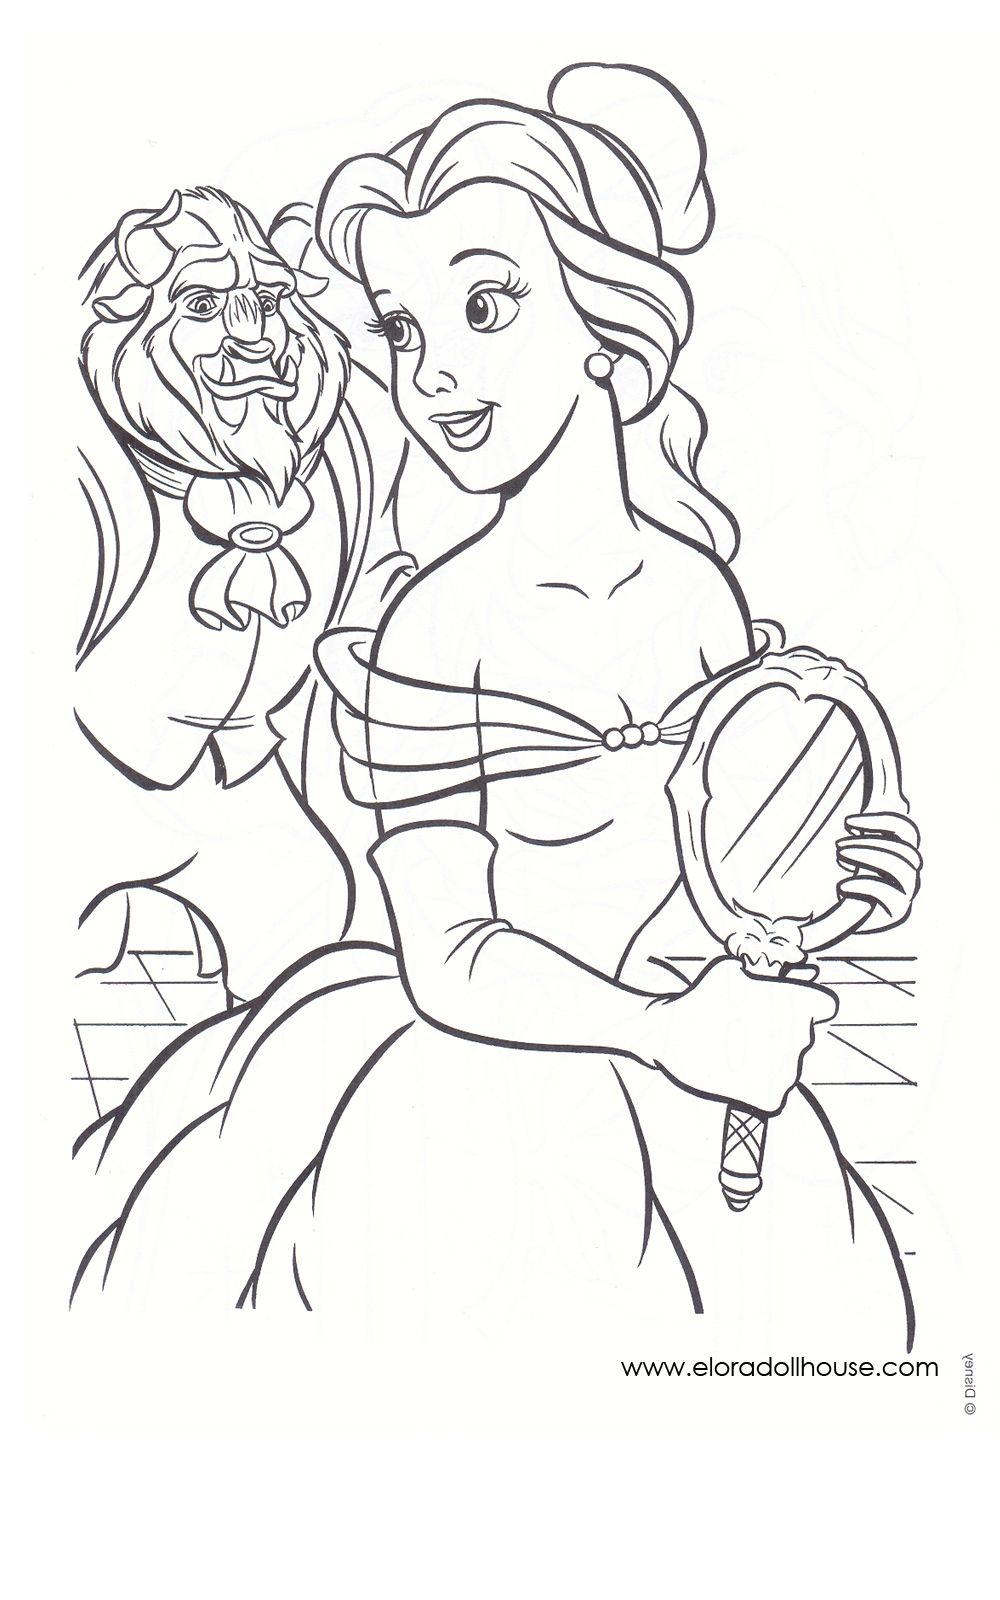 Pin de Patricia Iannone en Disney - The Beauty and the Beast ...